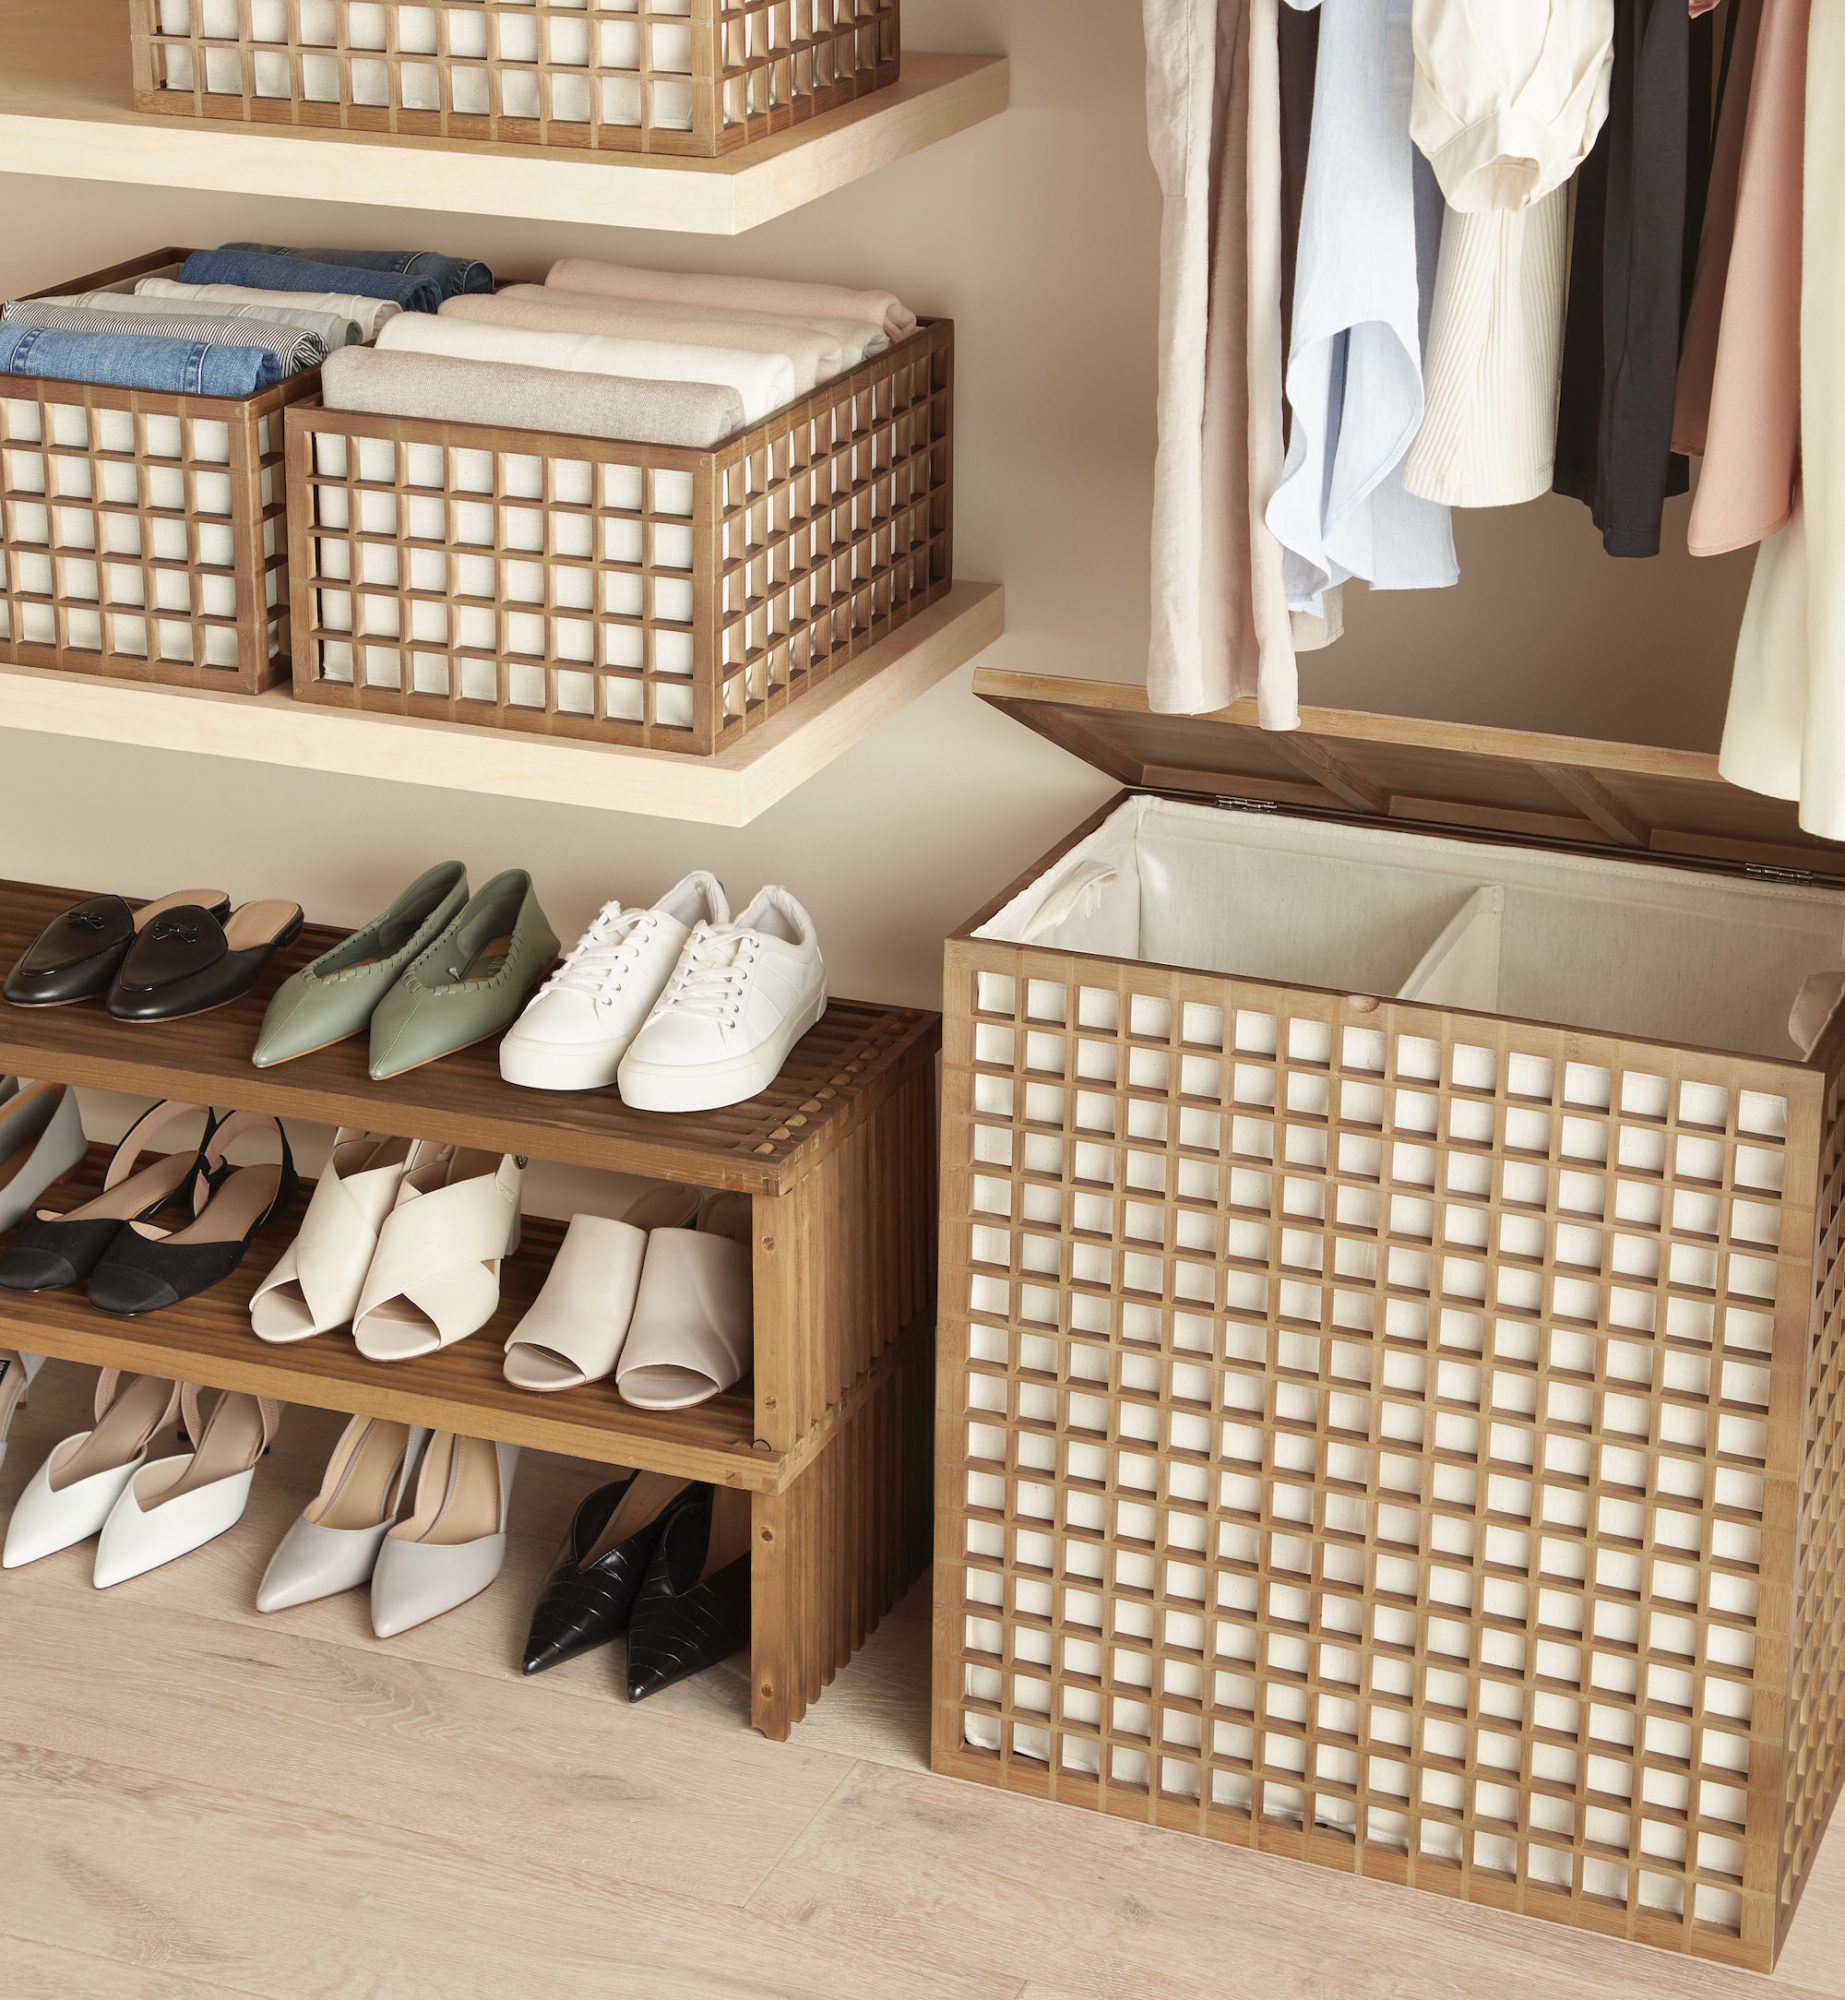 Marie Kondo Container Store Baskets in Closet